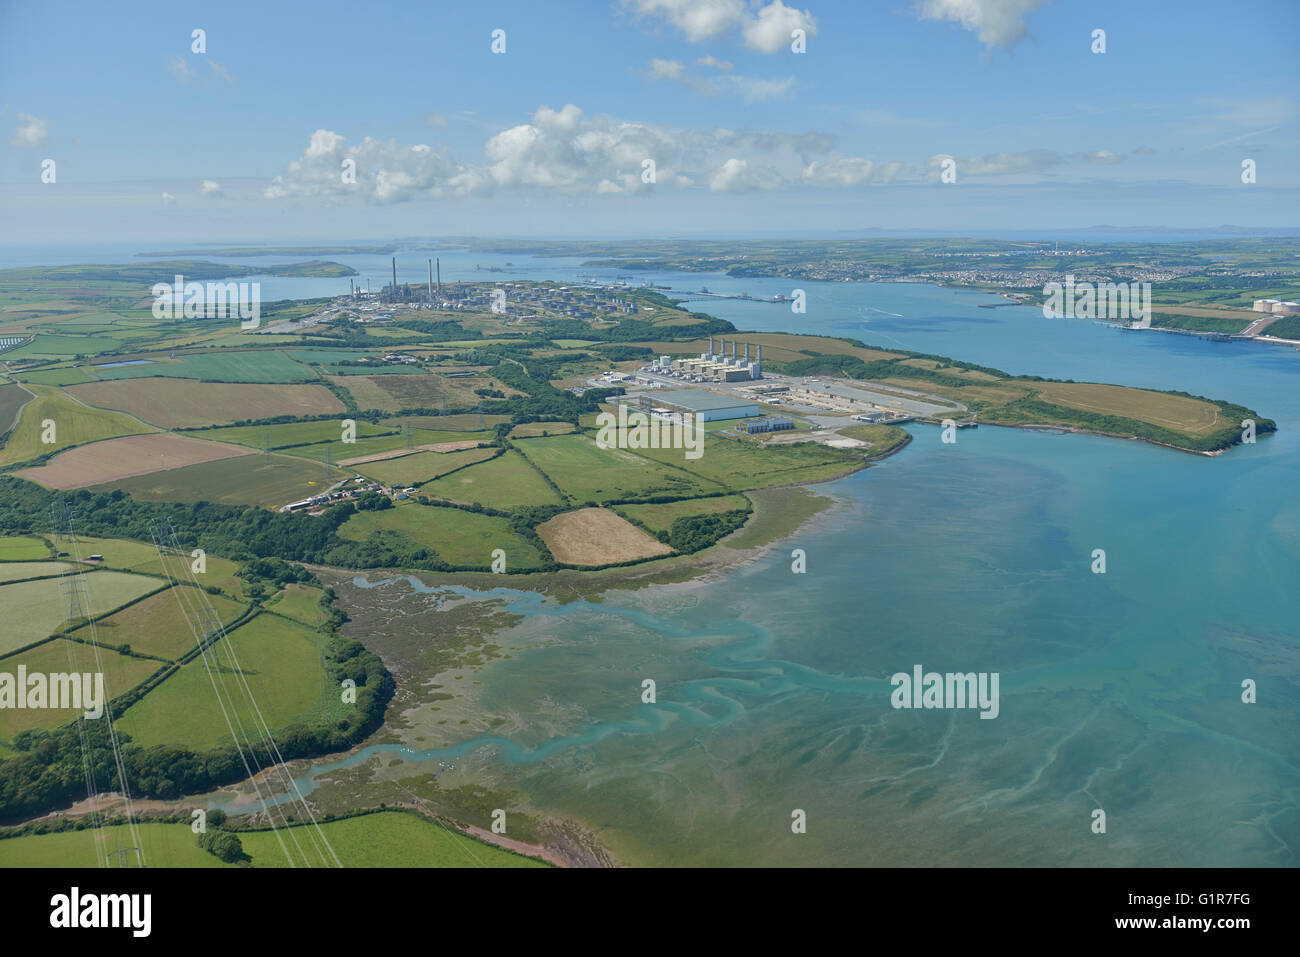 An aerial view of Milford Haven, Pembrokeshire - Stock Image